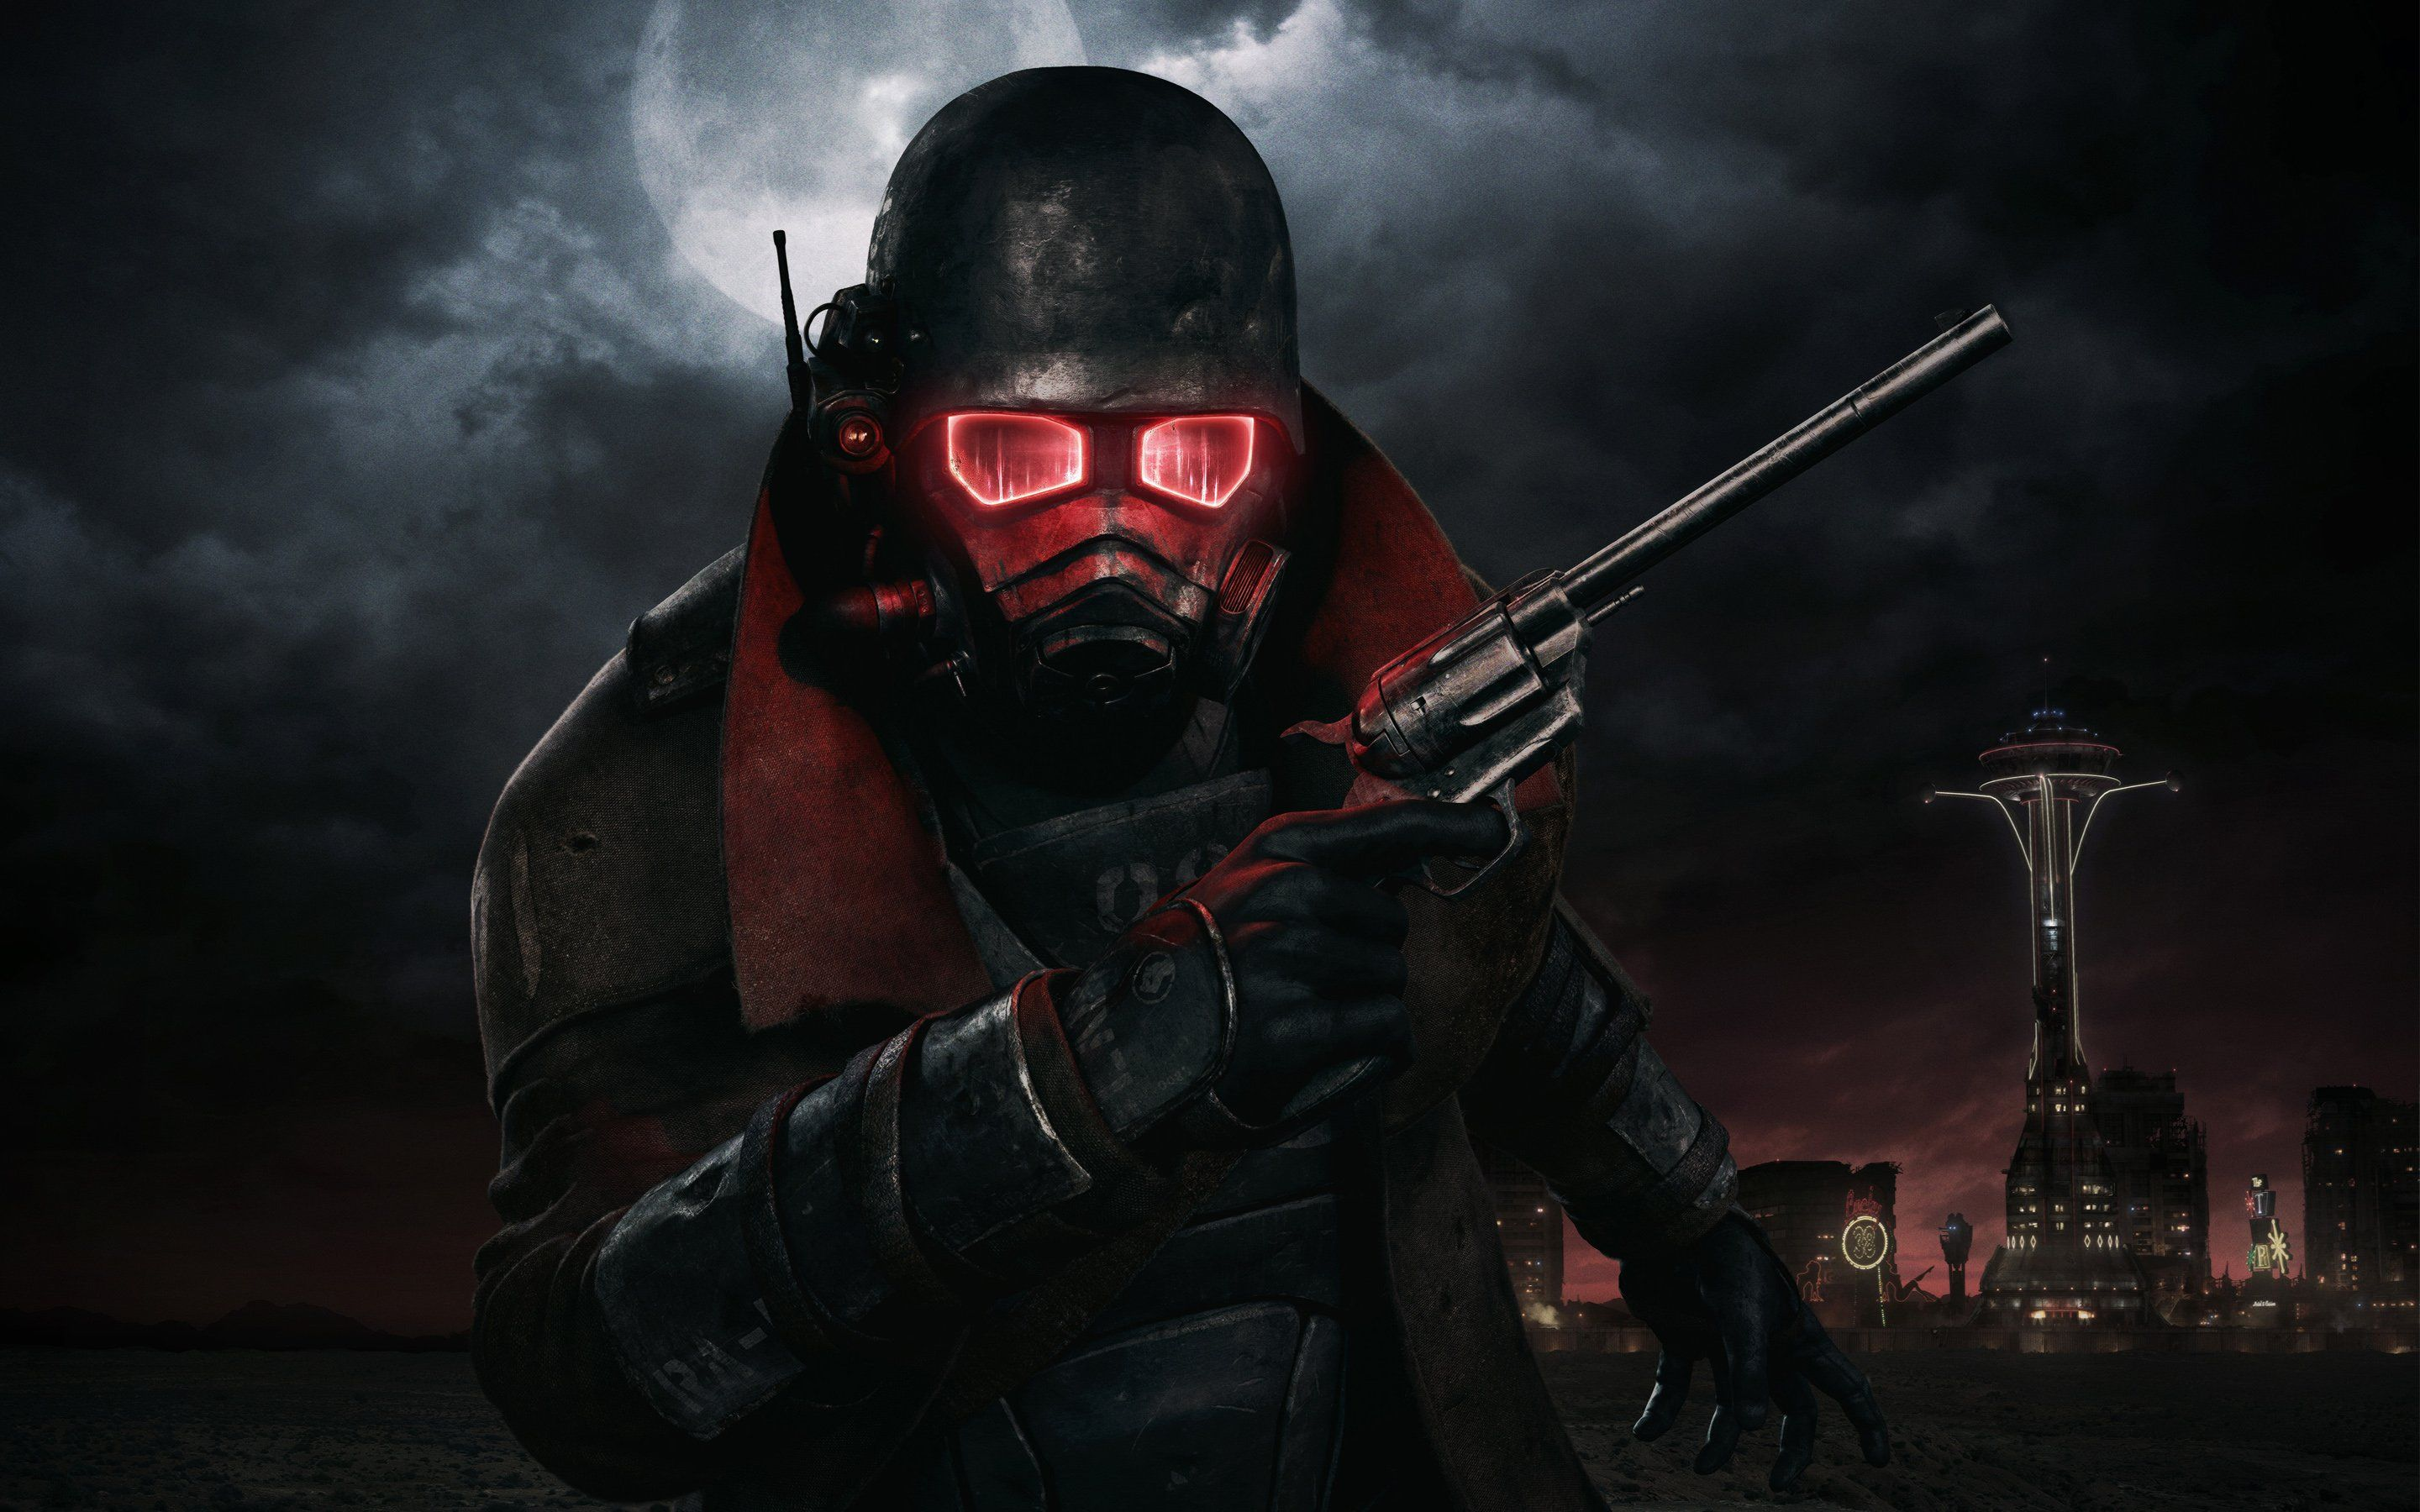 Fallout New Vegas Sci Fi Assassin Soldier Fallout New